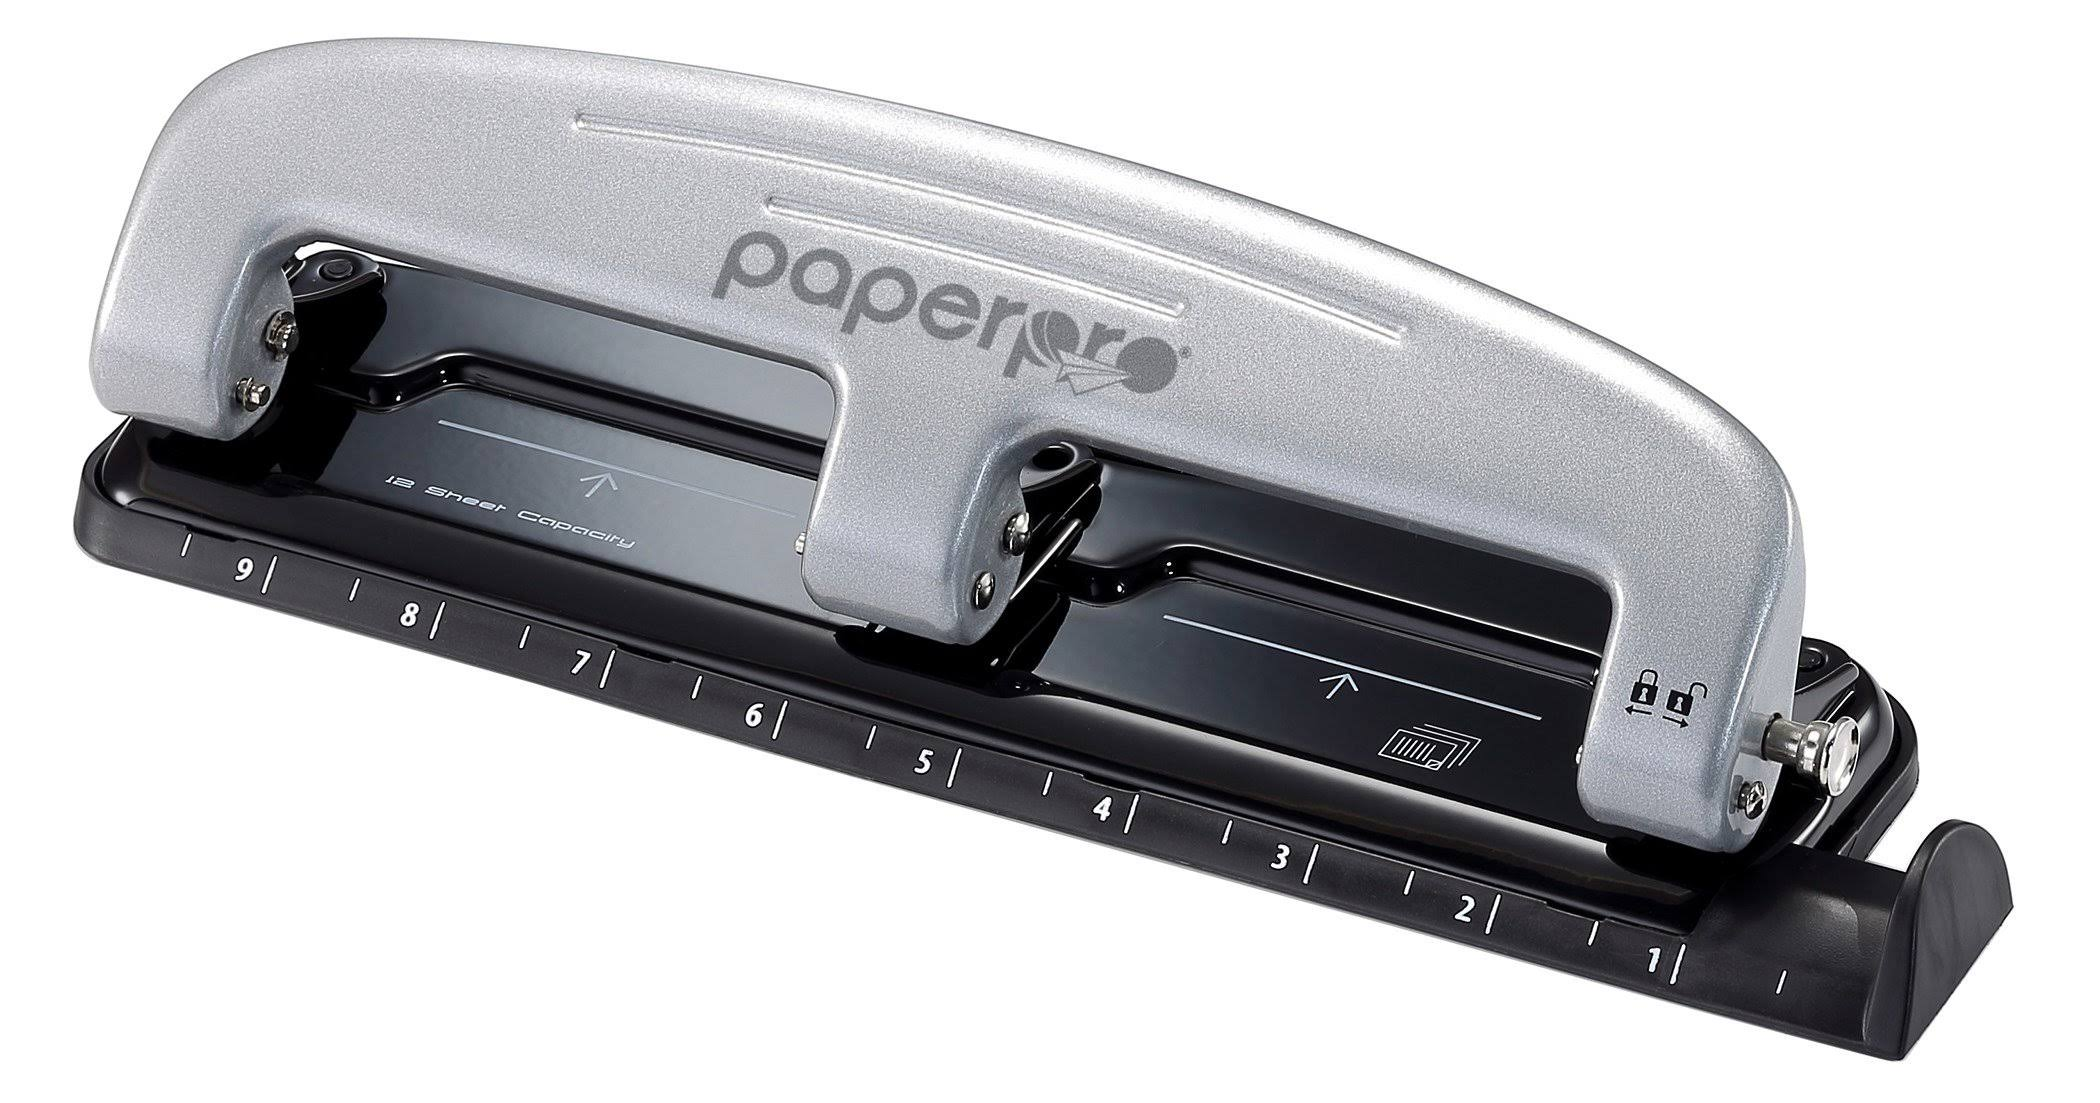 Paper Pro 2100 Compact Paper Punch - 3 Hole